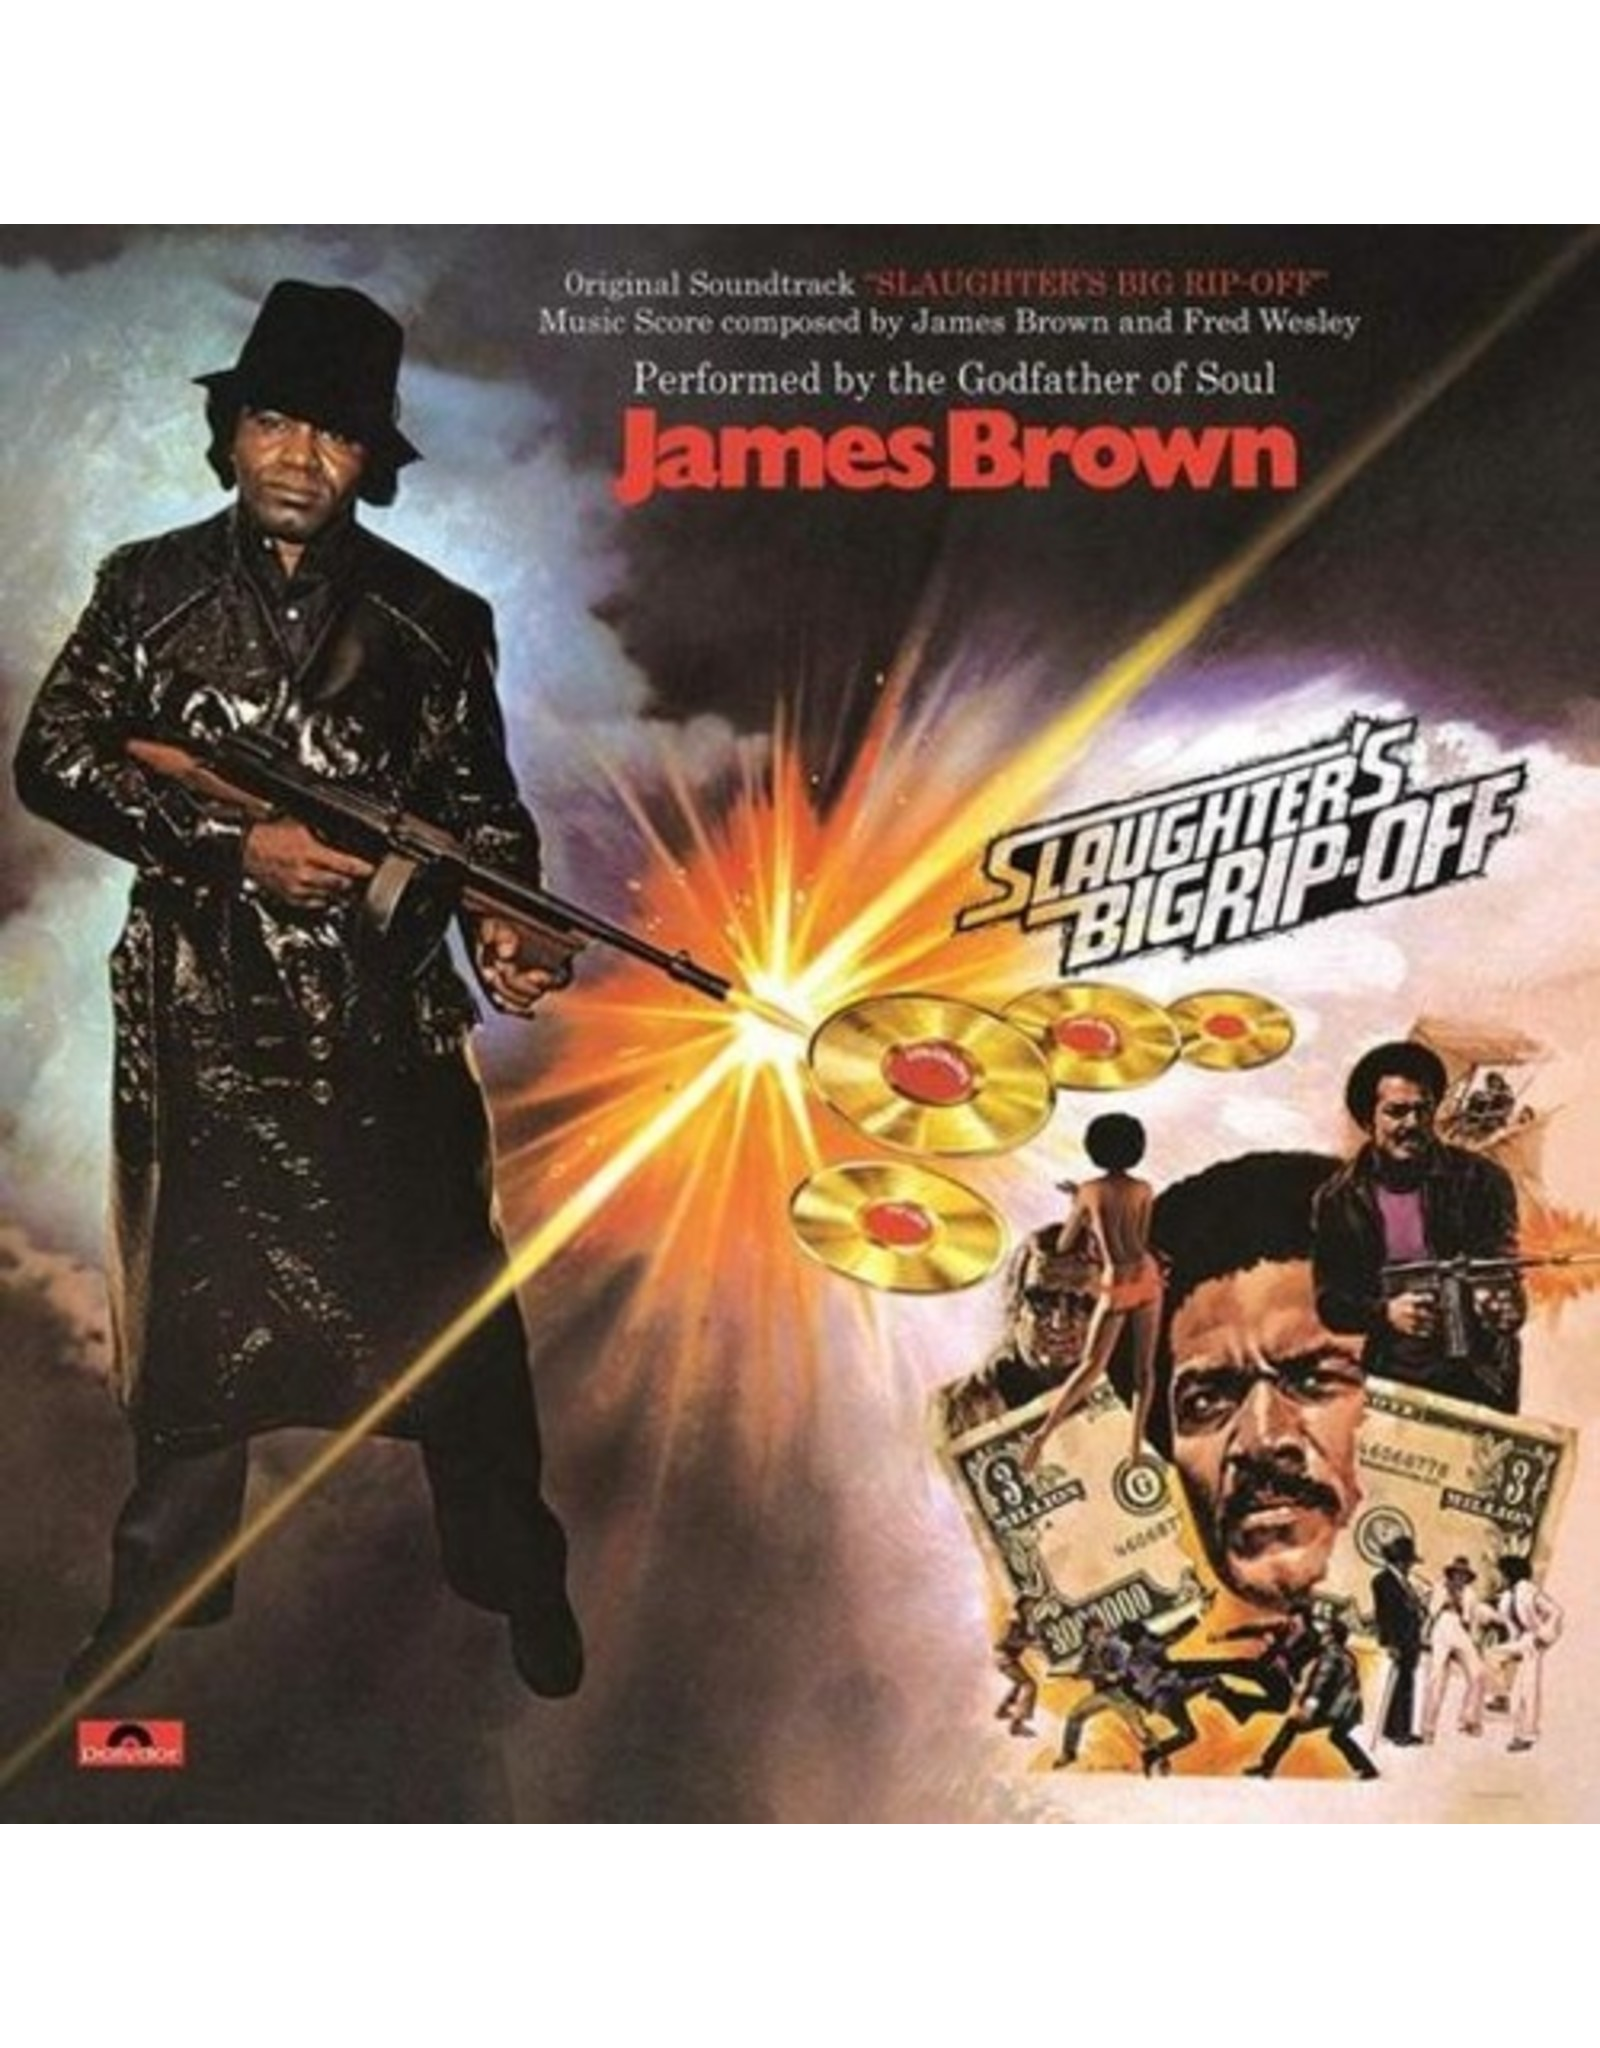 New Vinyl James Brown - Slaughter's Big Rip Off OST LP